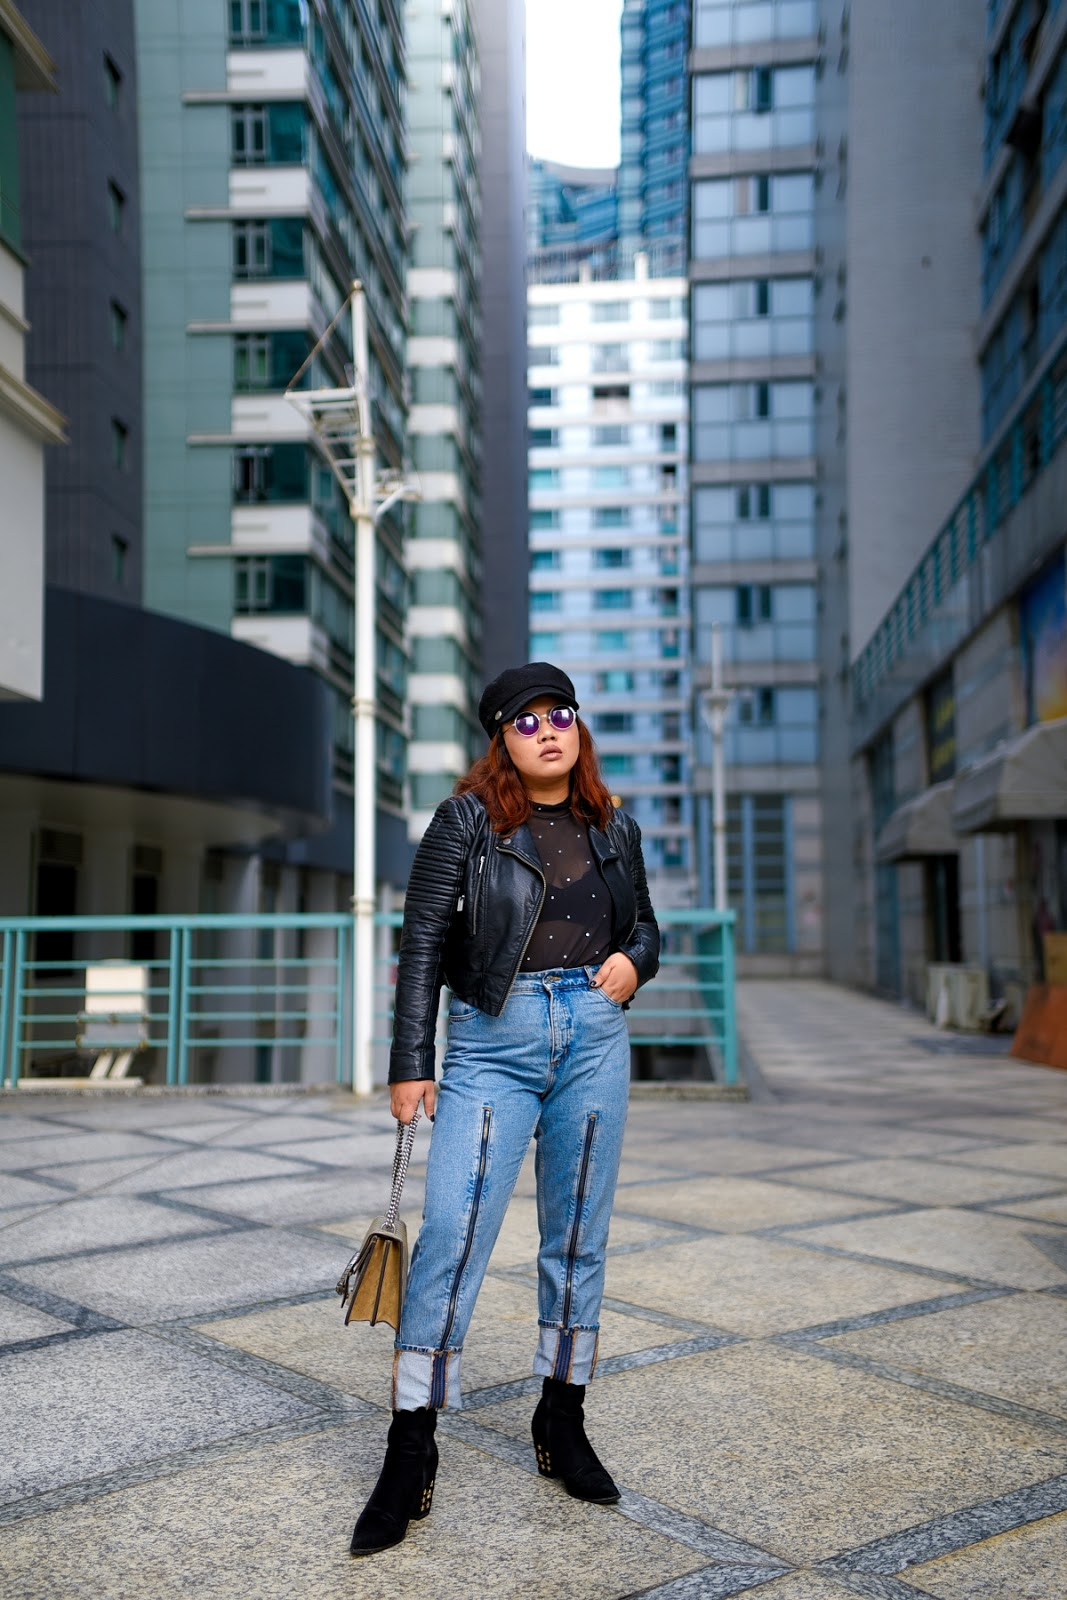 Biker Chic Vibes in Leather Jacket and Jeans